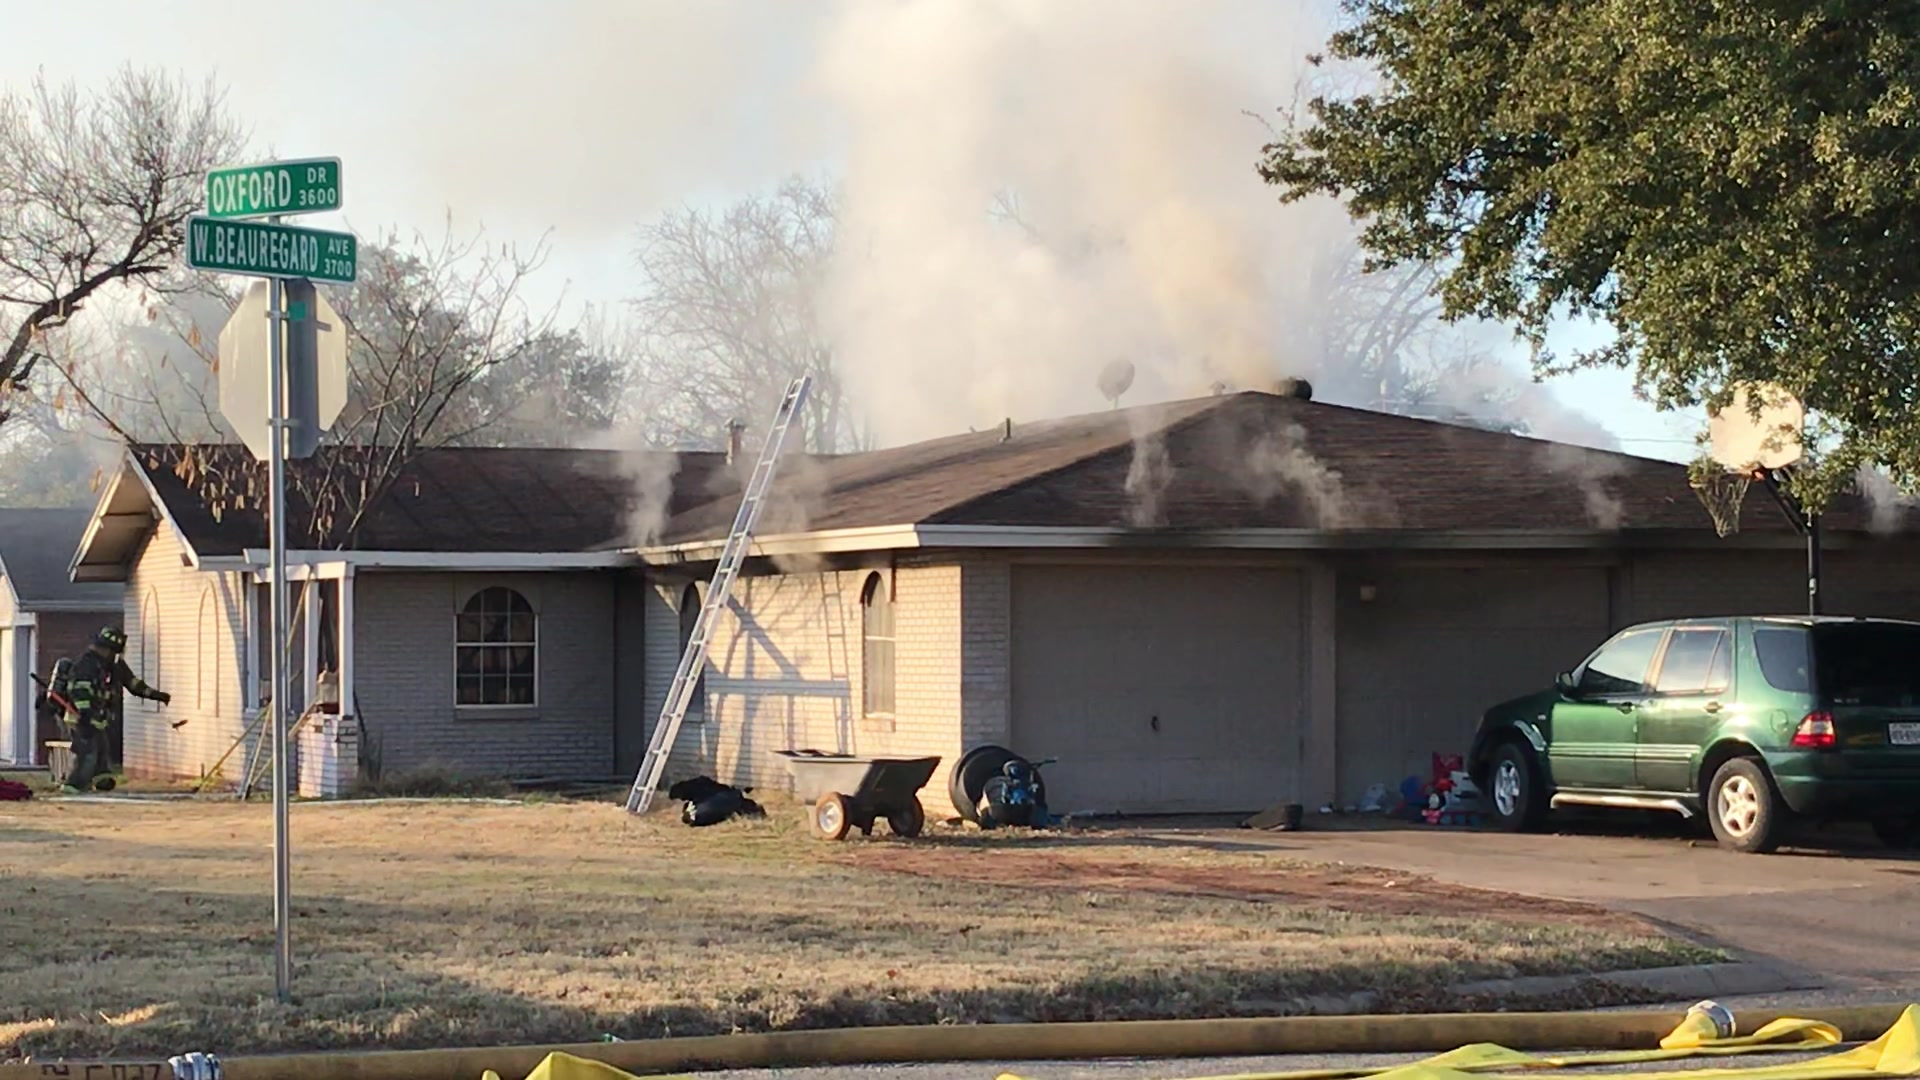 House fire at Oxford and West Beauregard